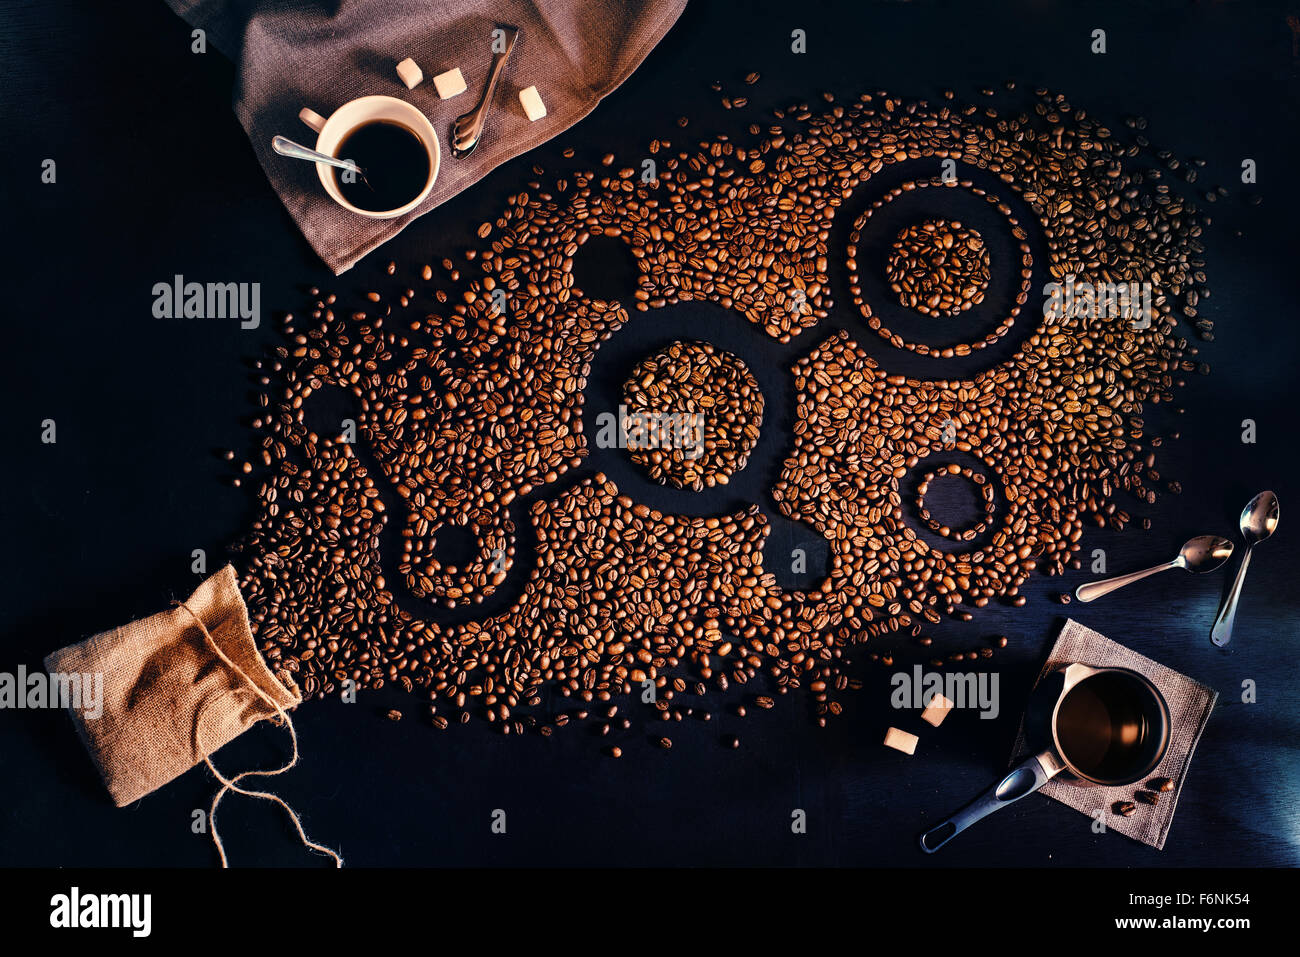 Coffee signs - Stock Image